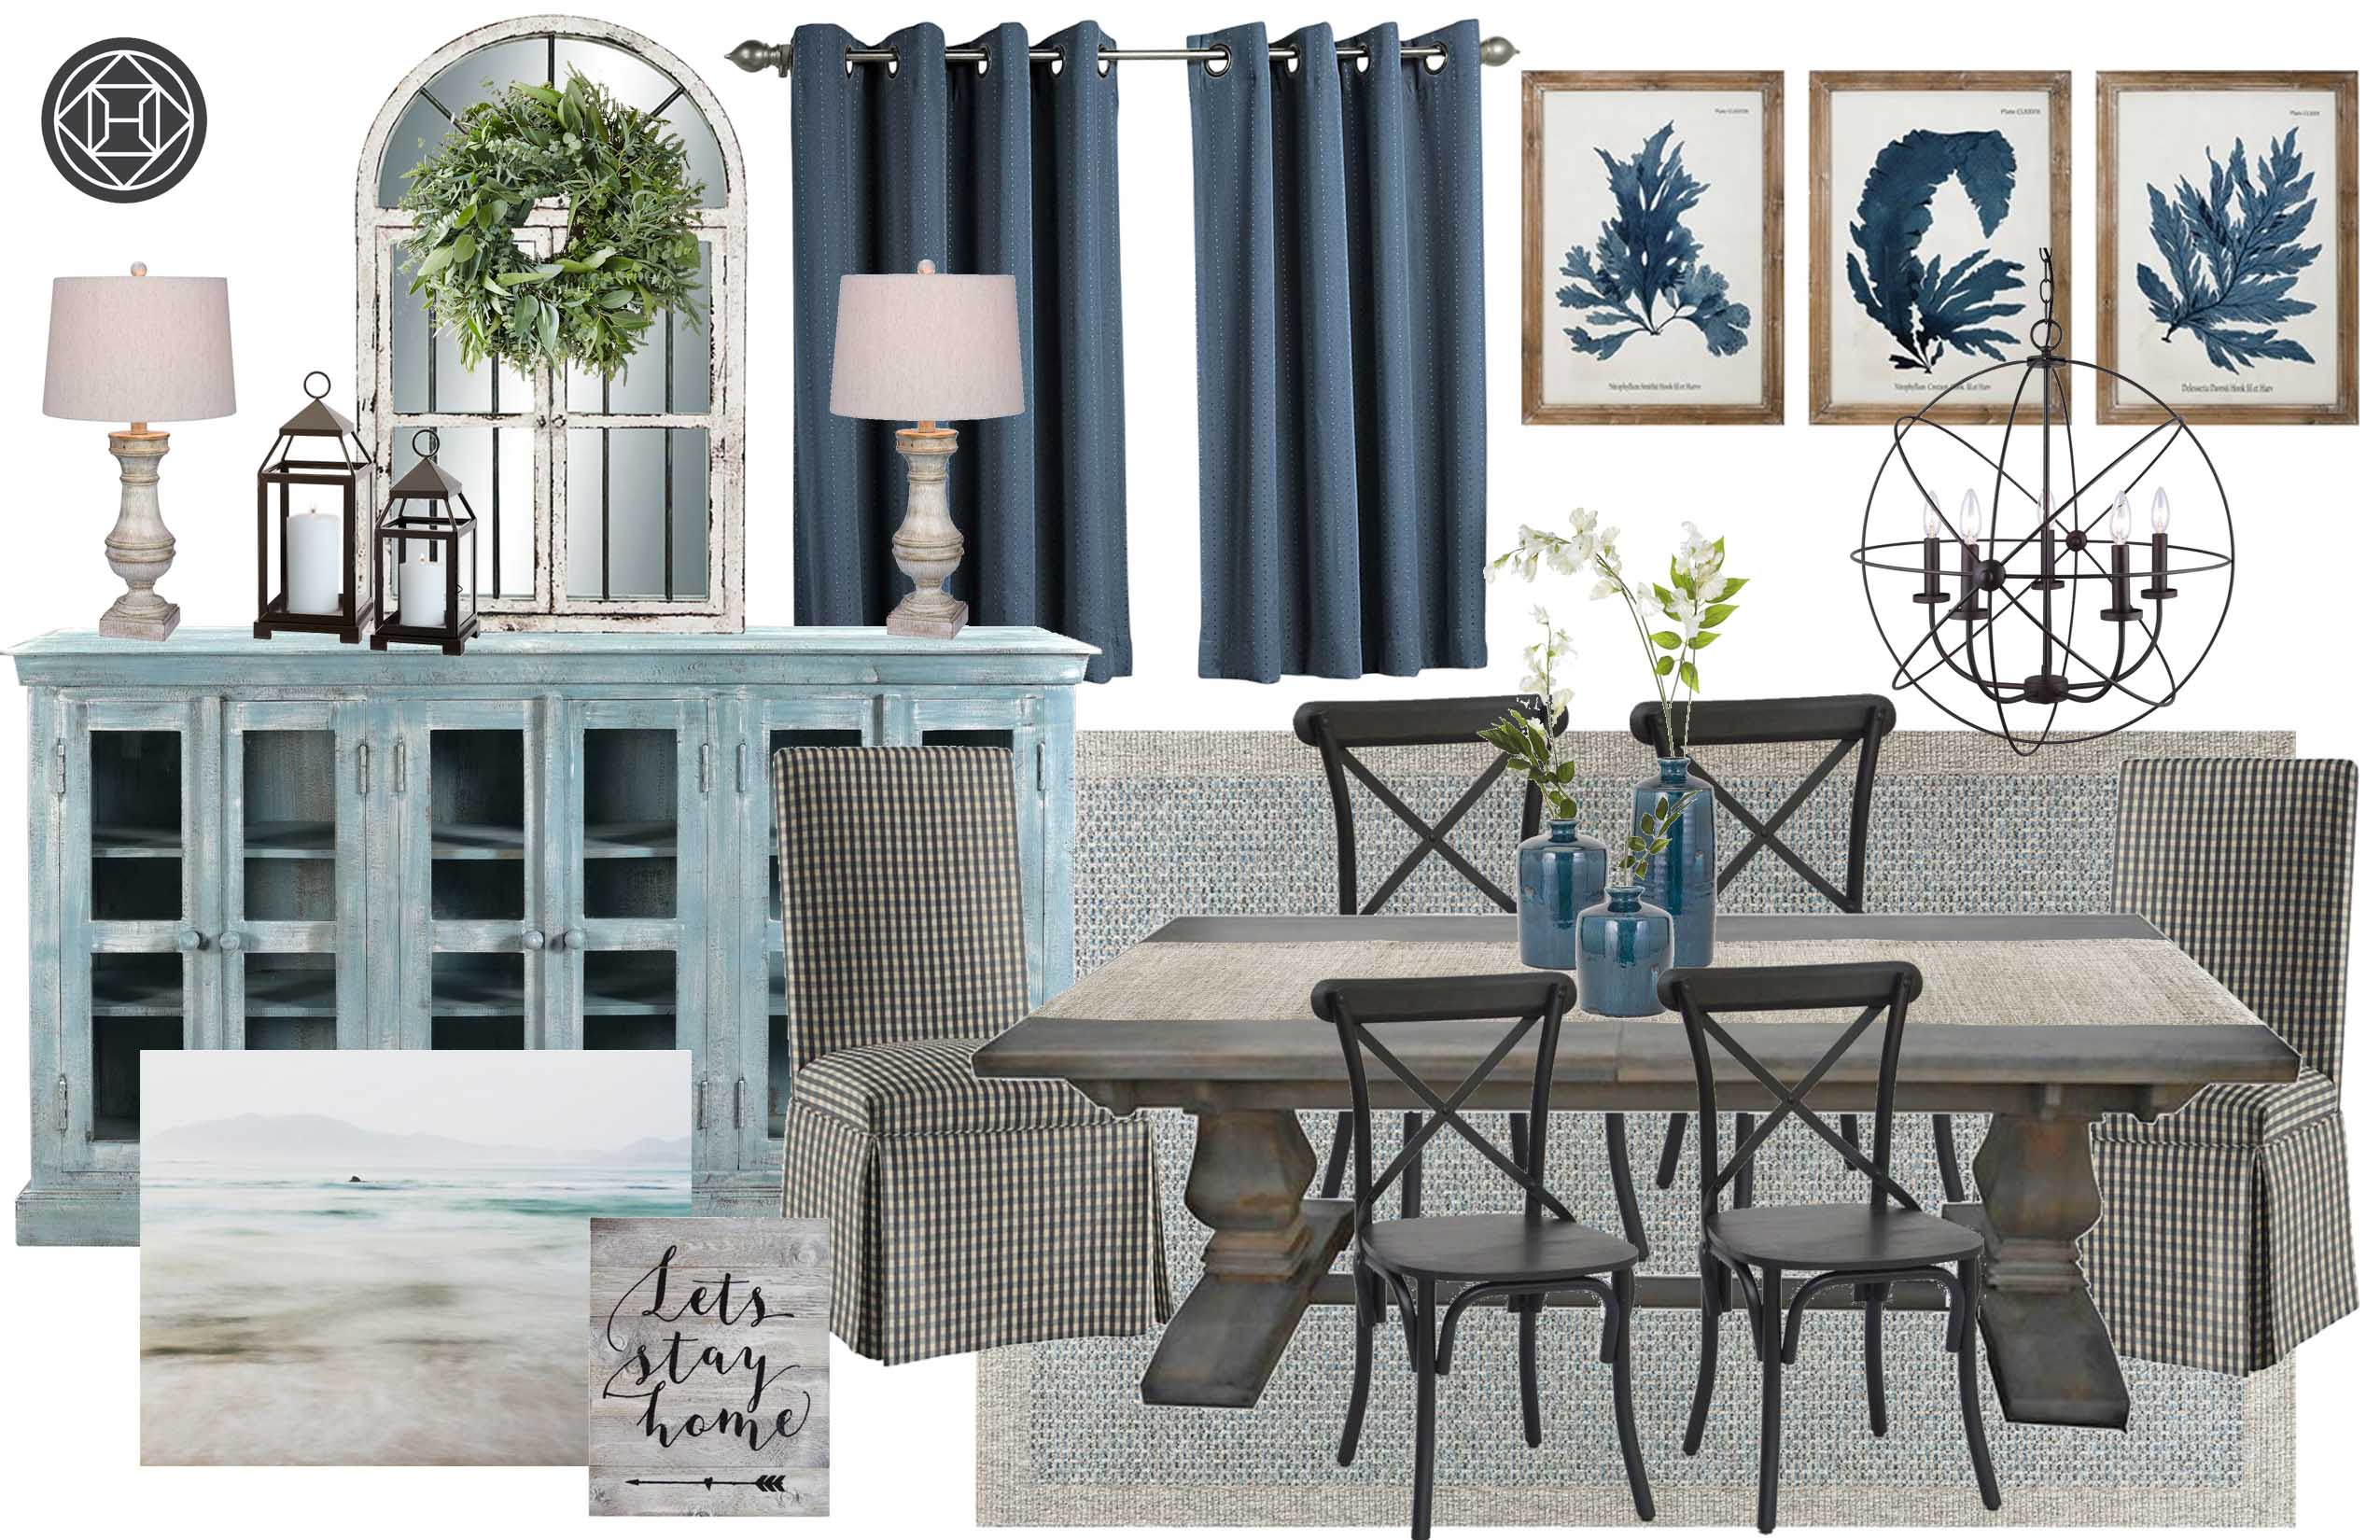 contemporary modern rustic living room design havenly interior cassie round accent table with glass view profile fall vinyl tablecloths blue white lamps chinese mosaic patio side